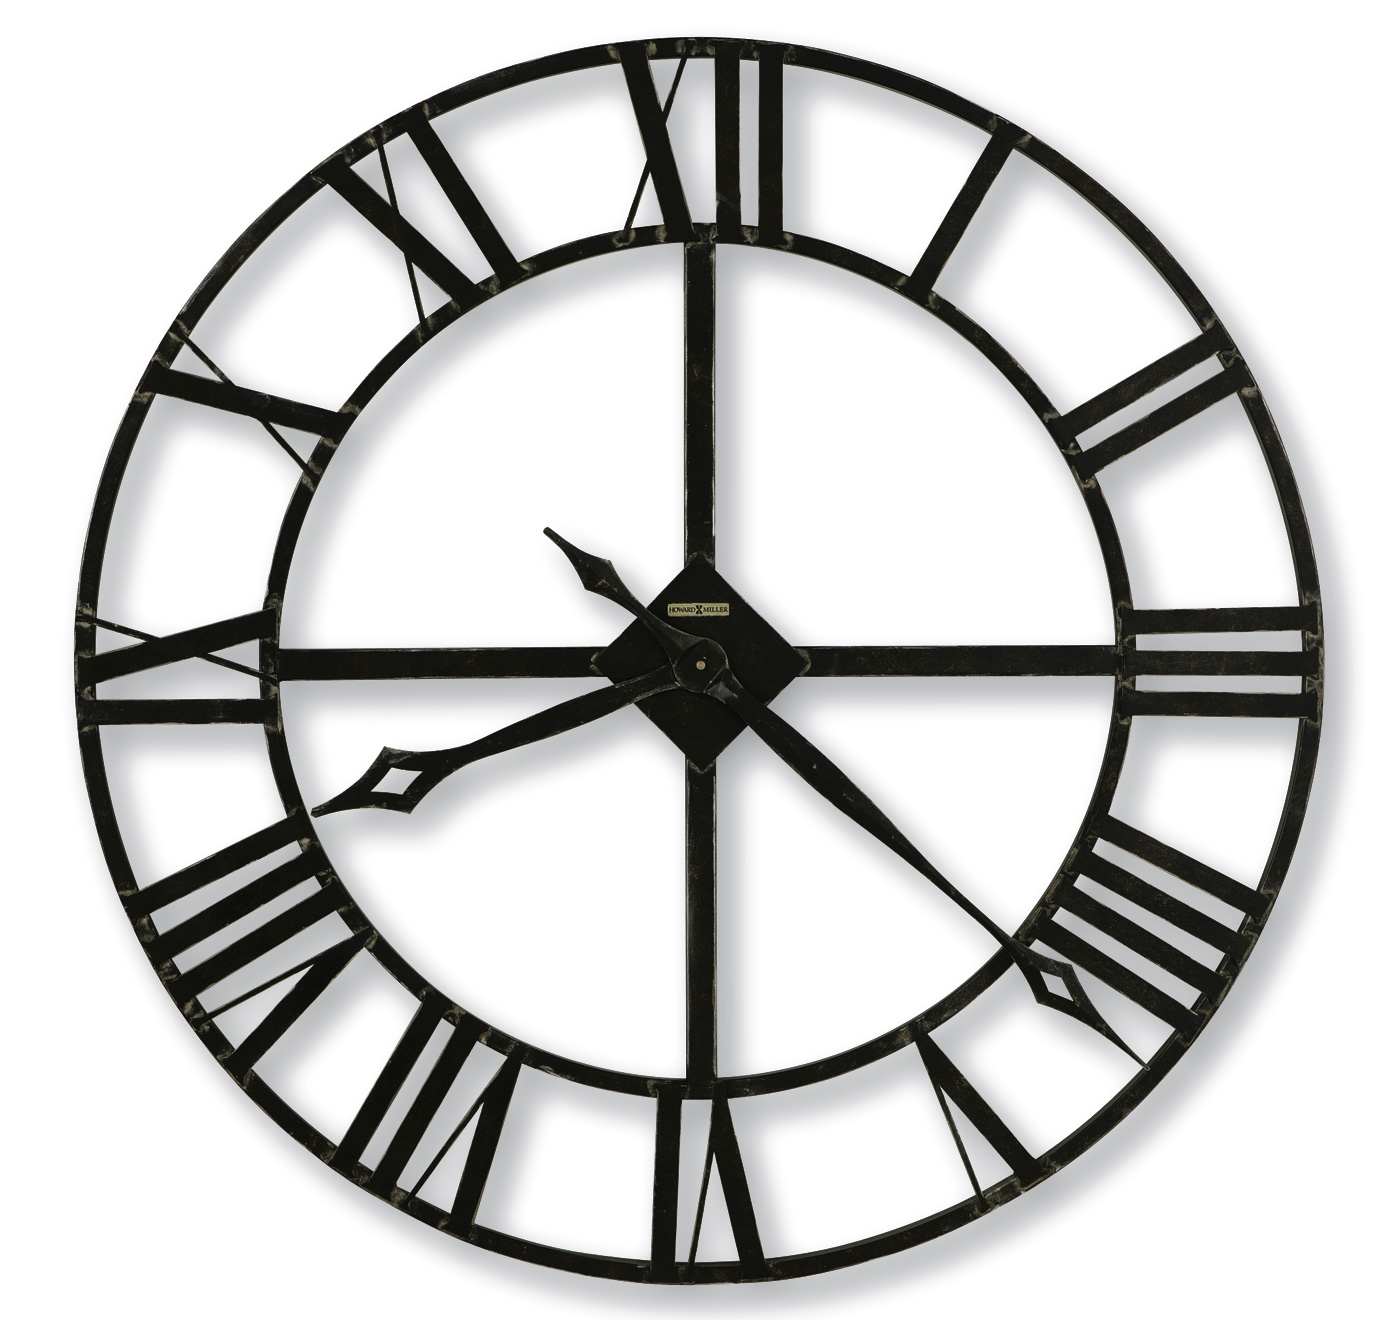 Lacy Wall Clock 32 by Howard Miller Open Face Wall Clocks